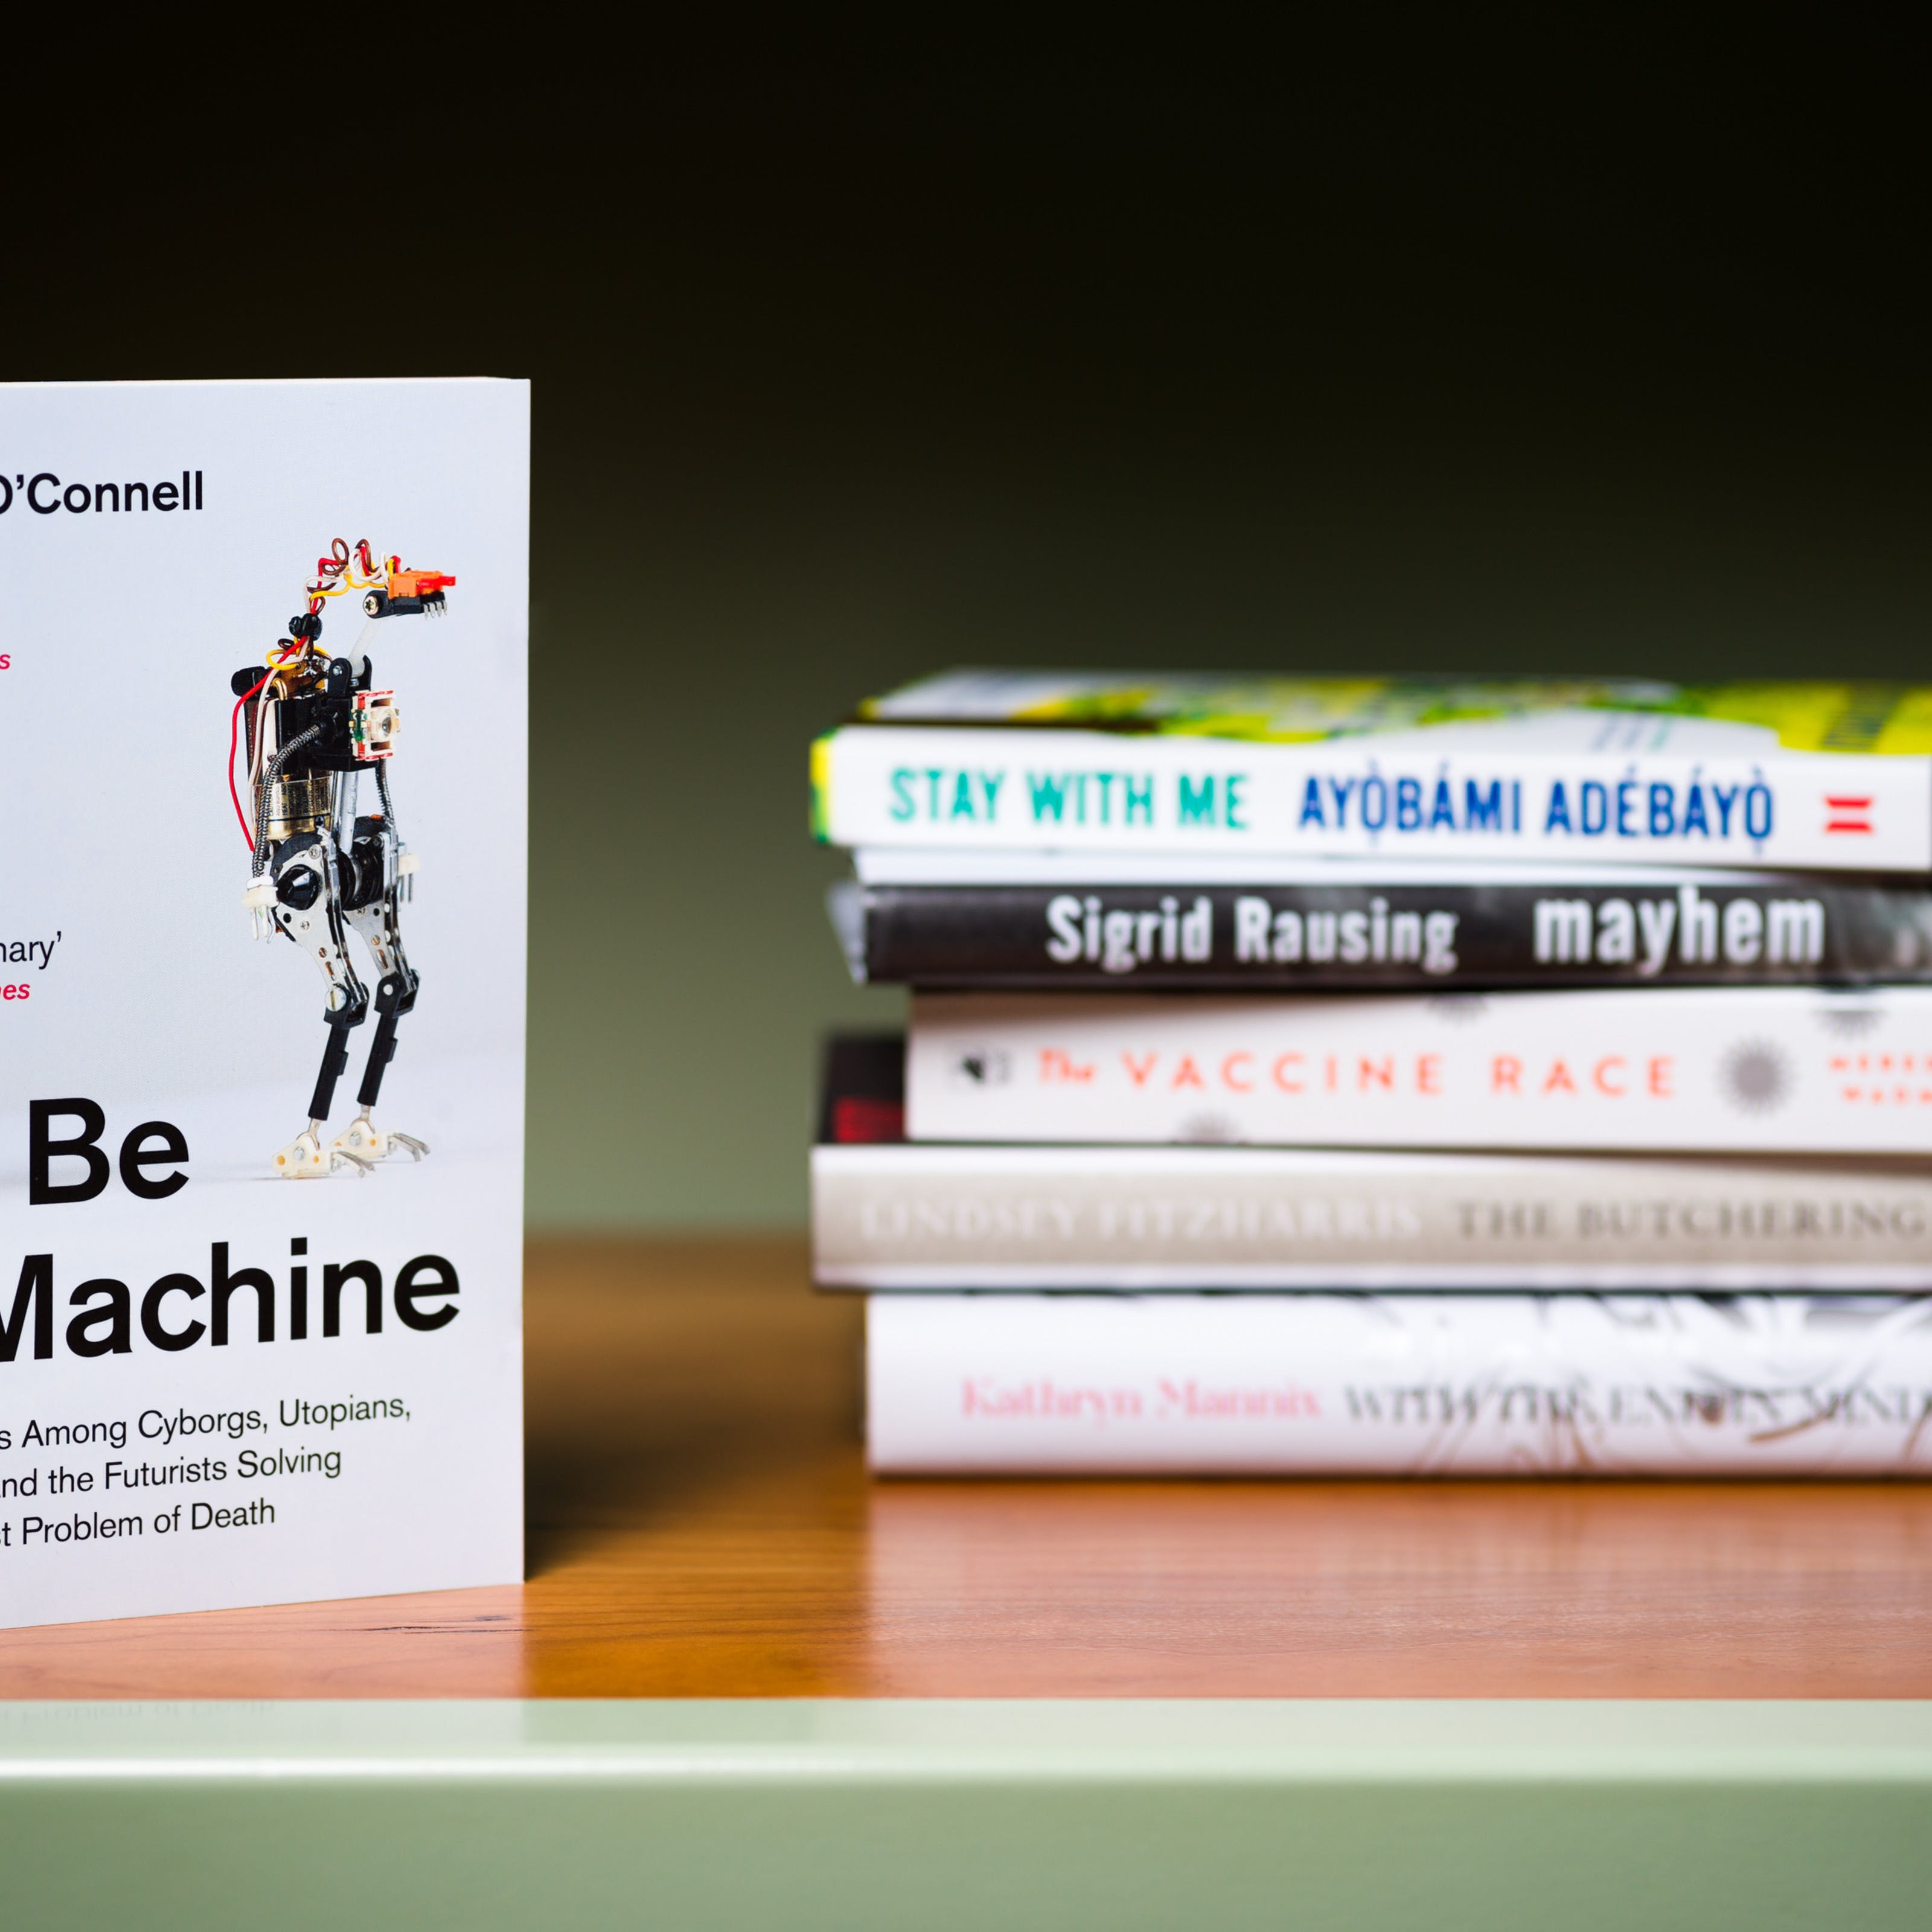 Photograph of a a stack of 5 books lying horizontally on a shelf with another book standing  vertically in the foreground.